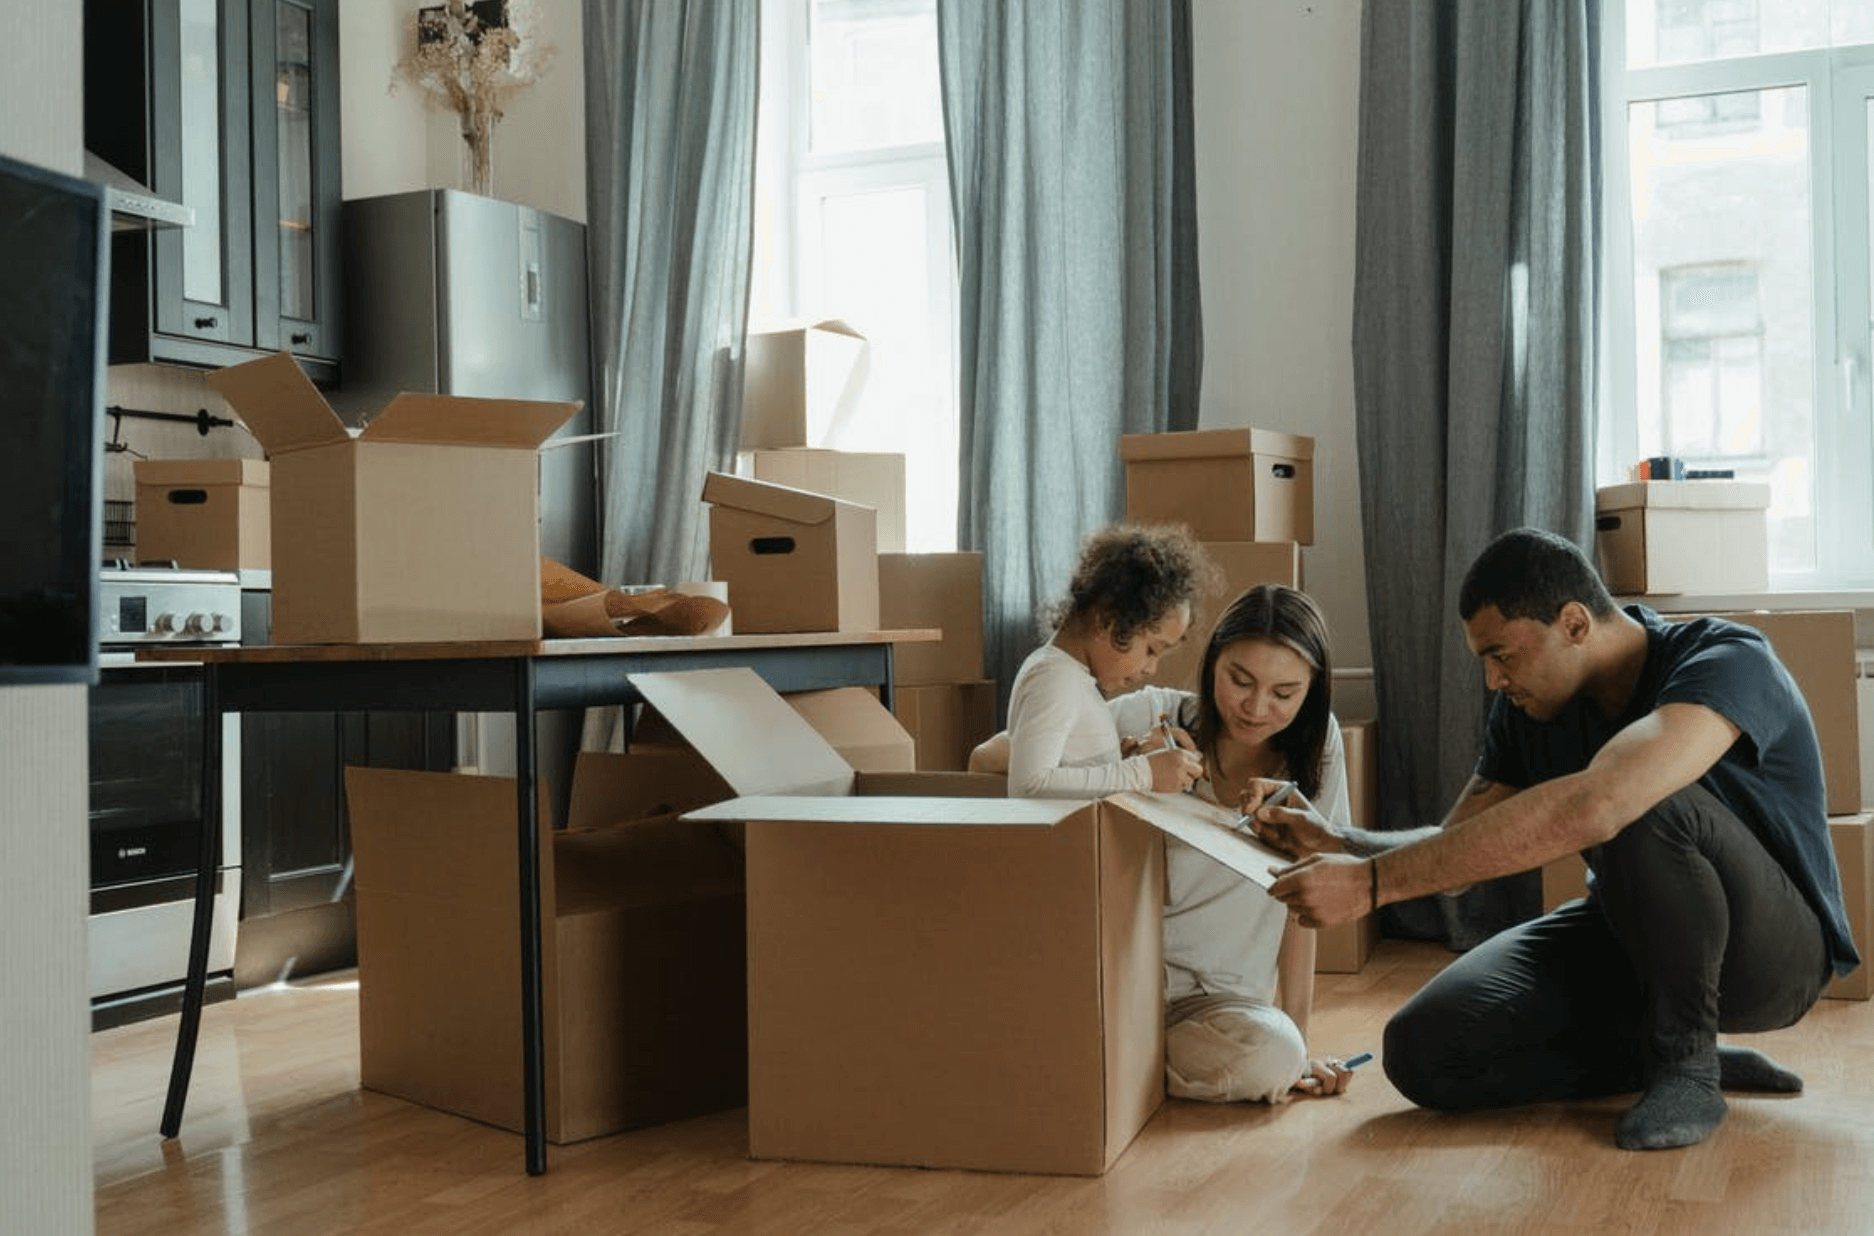 A family of three surrounded by packing boxes